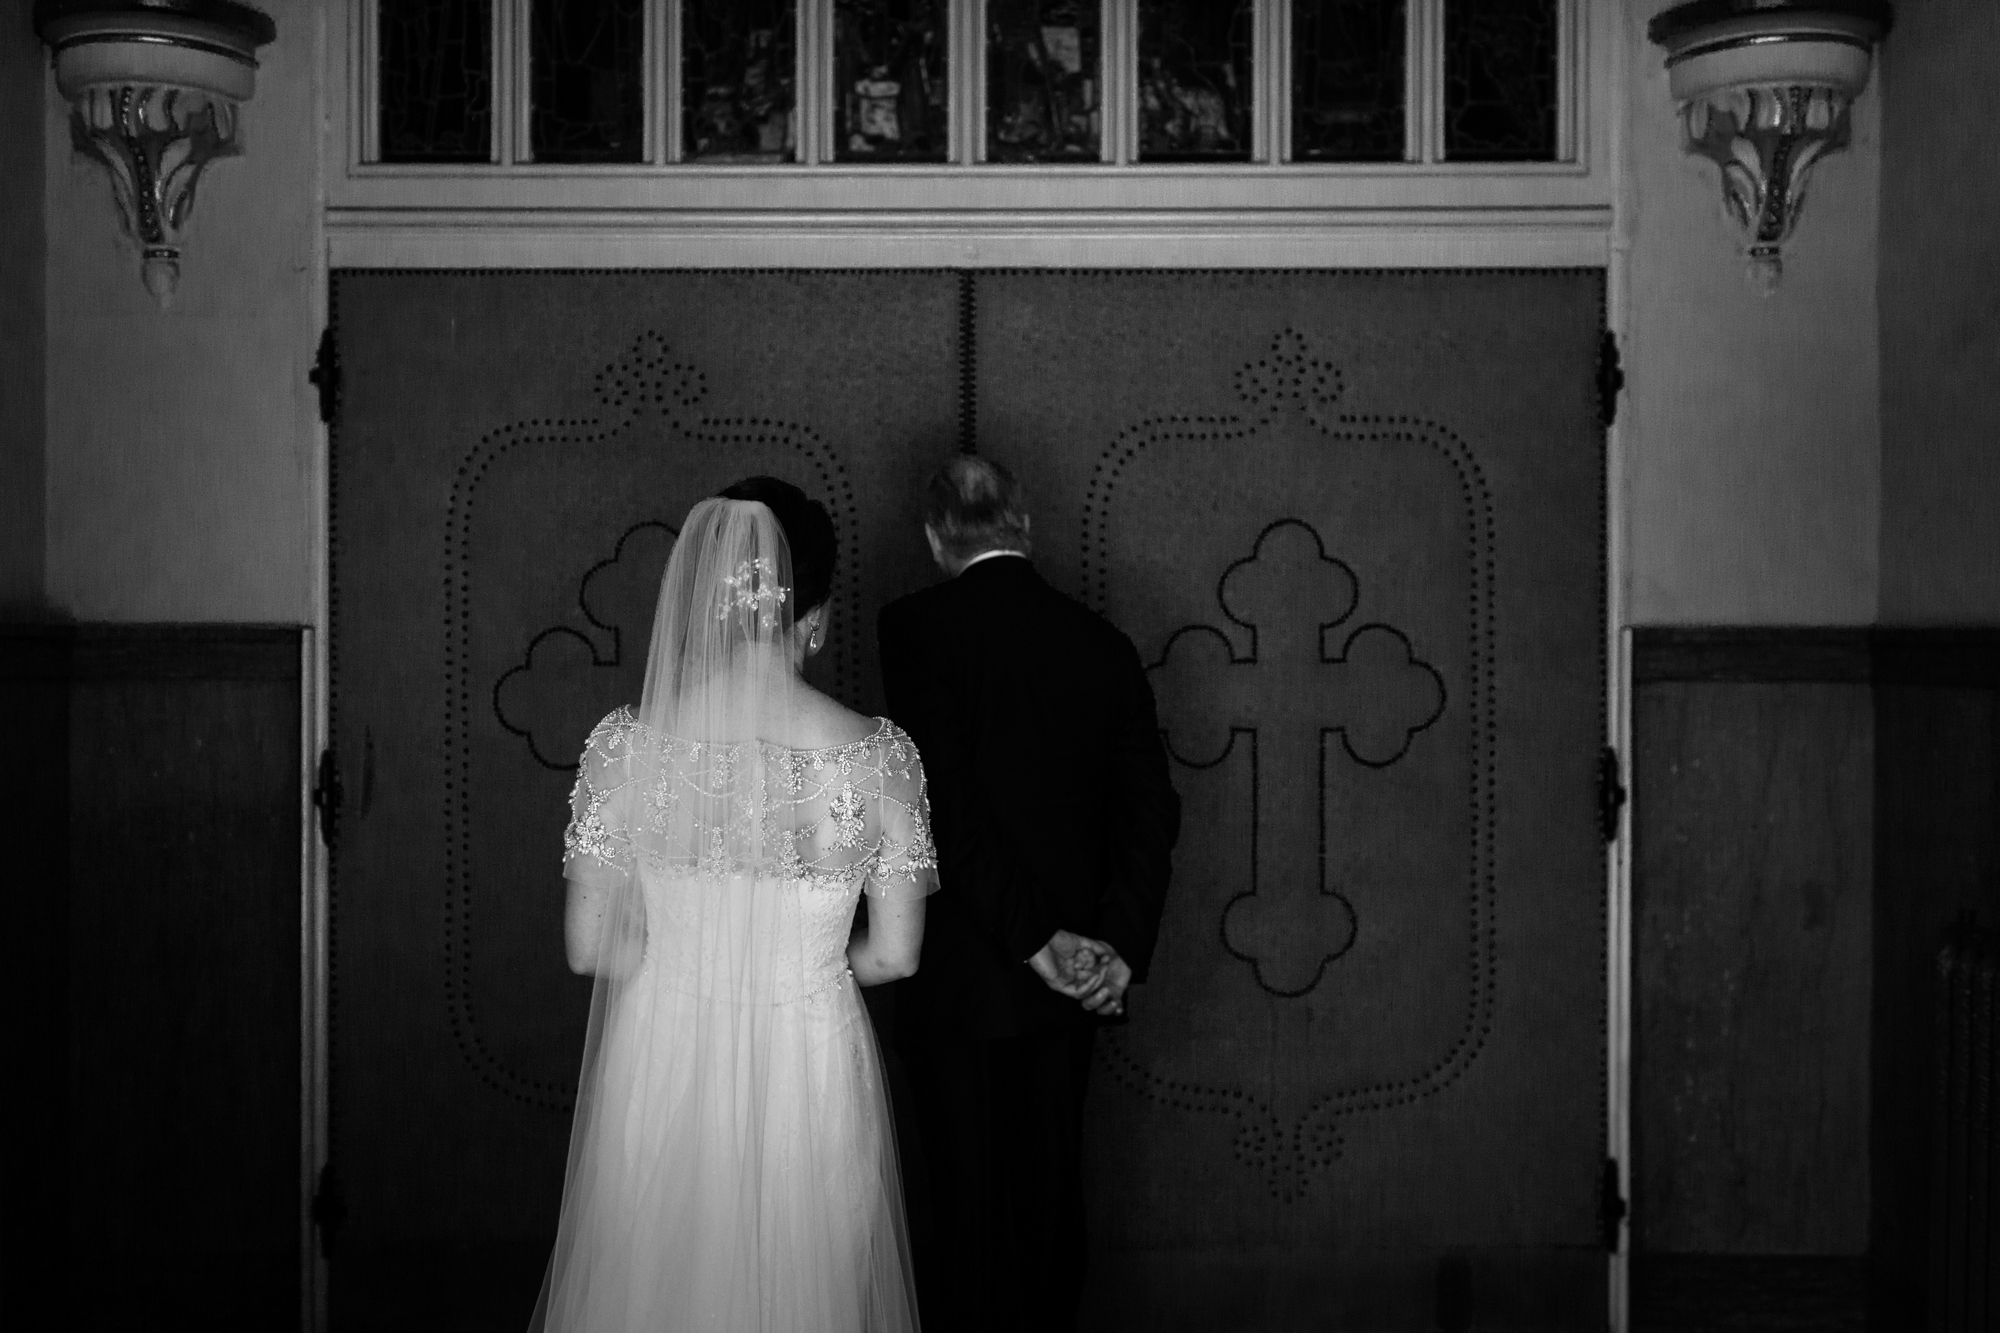 Bride and father wait for wedding ceremony to begin at St Michael's in Old Town, Chicago